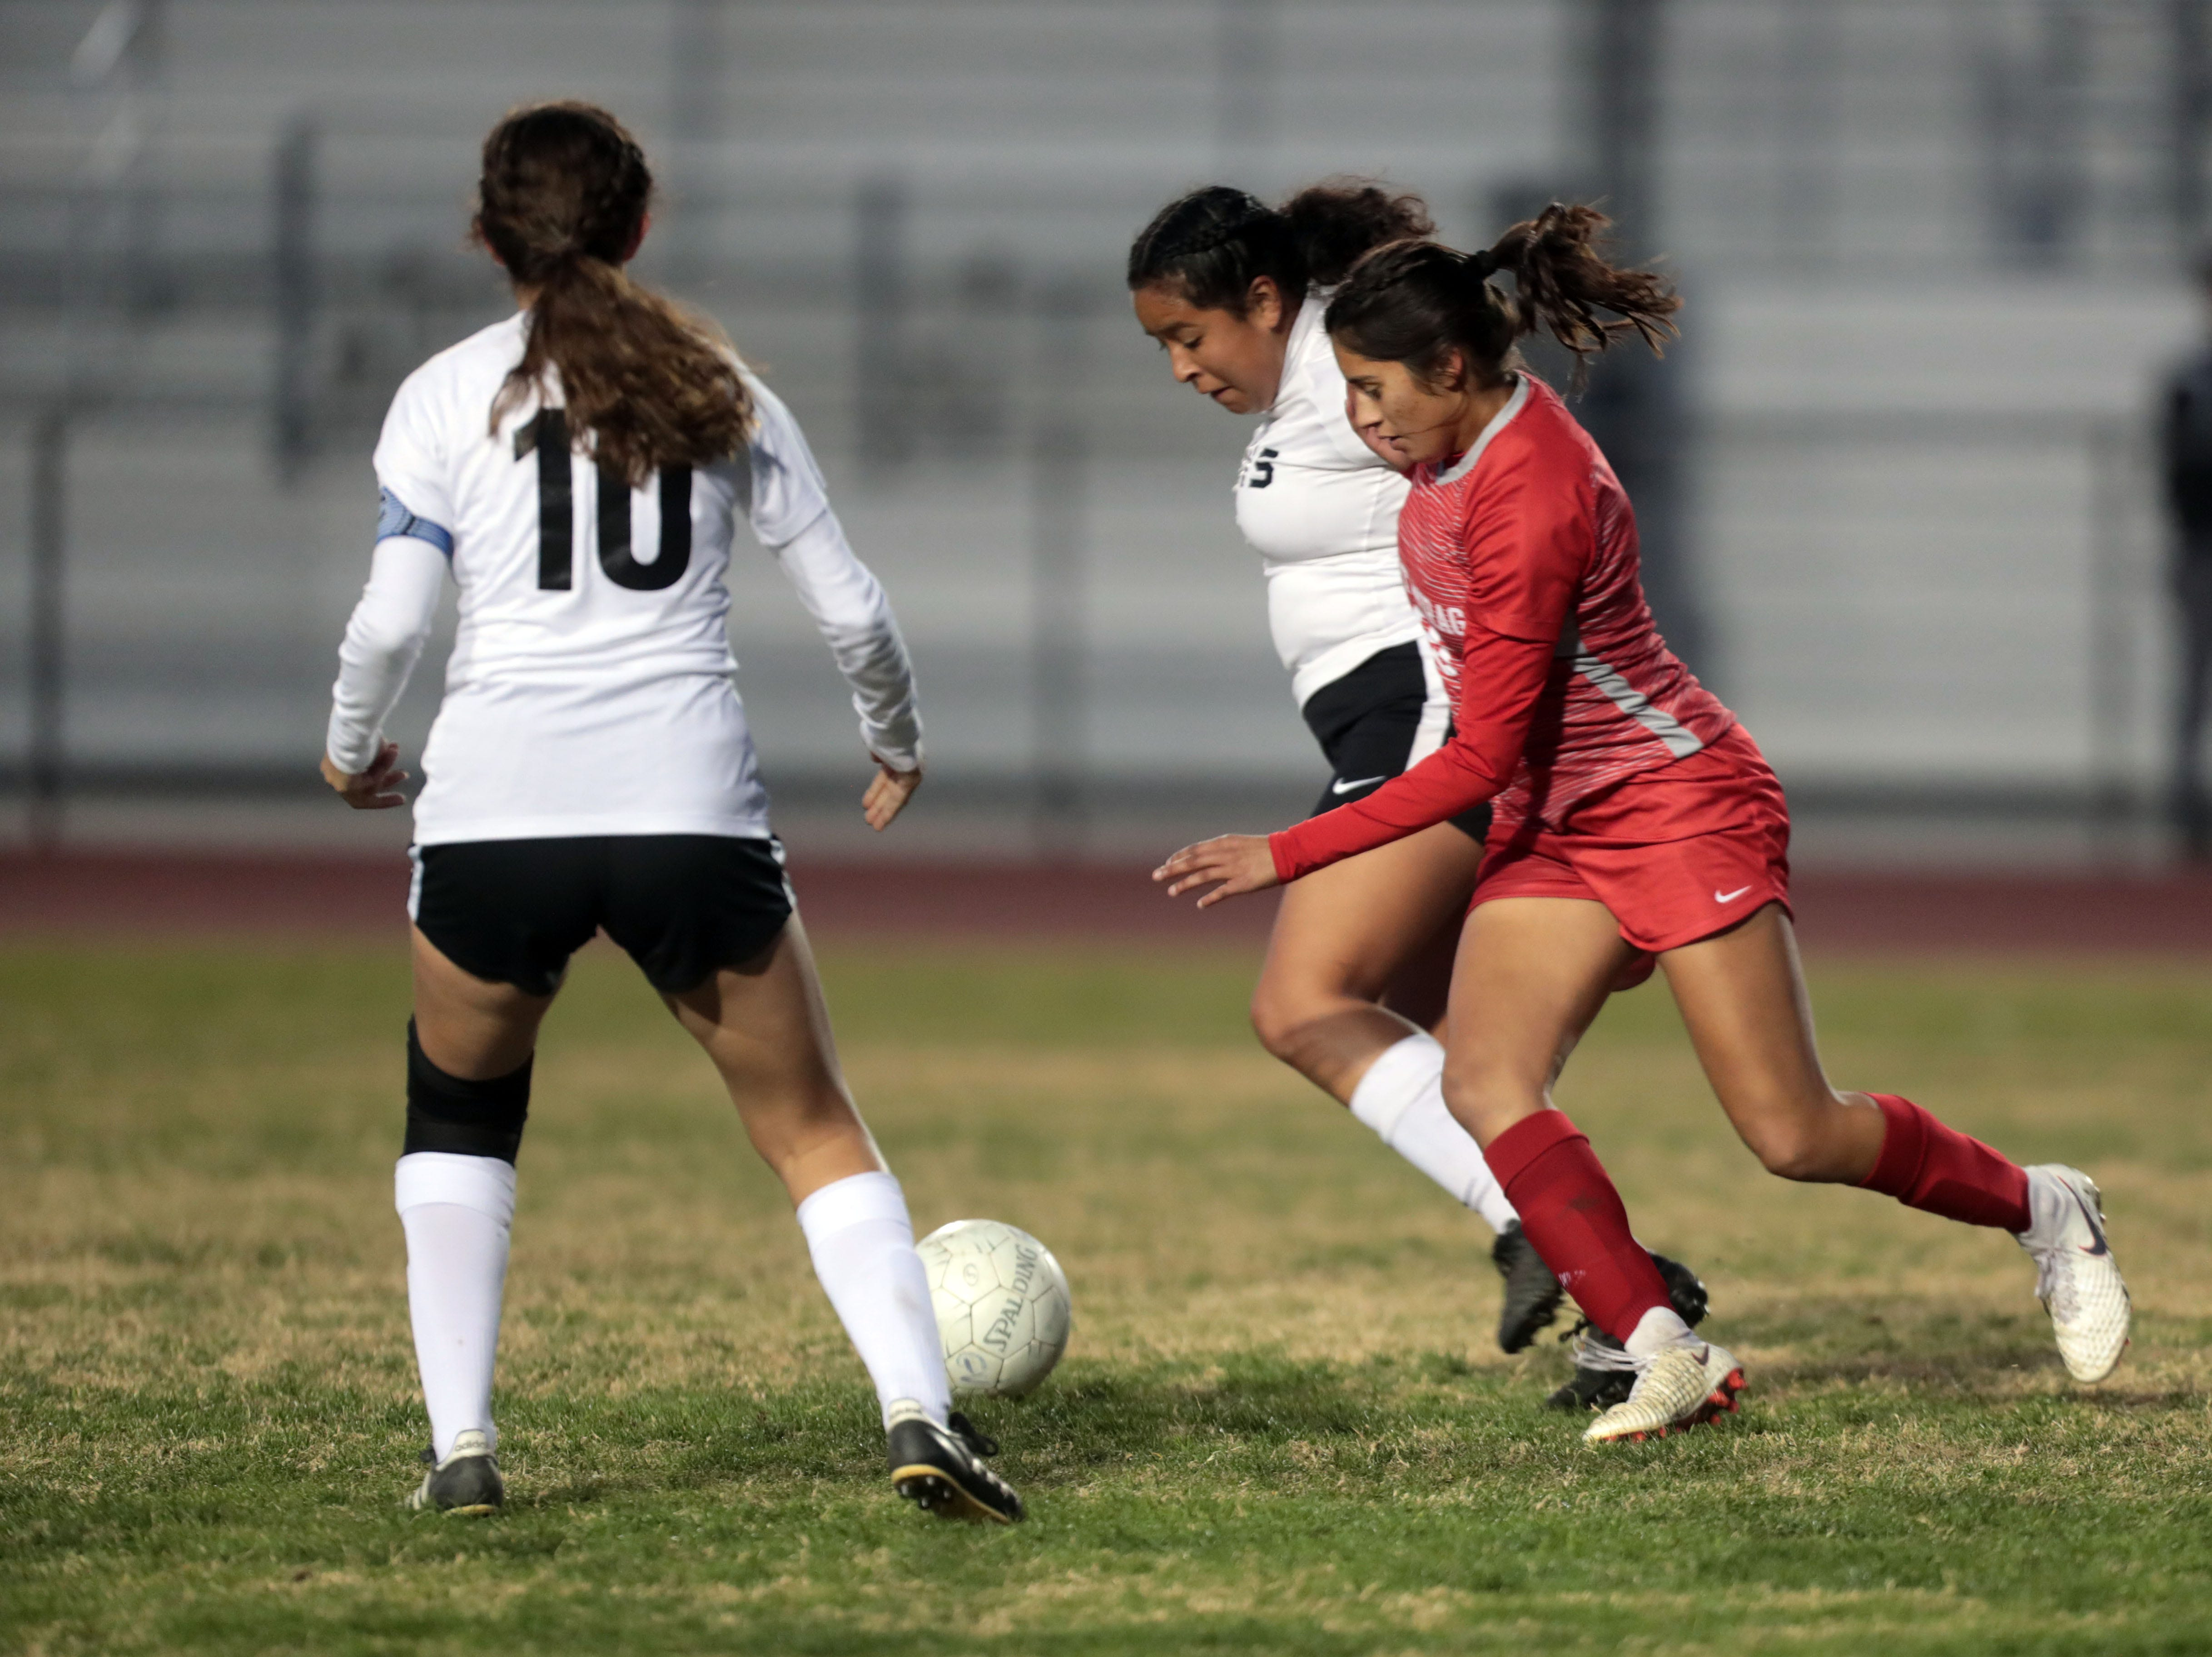 Cathedral City and Desert Mirage soccer action on Tuesday, January 8, 2018 in Thermal.